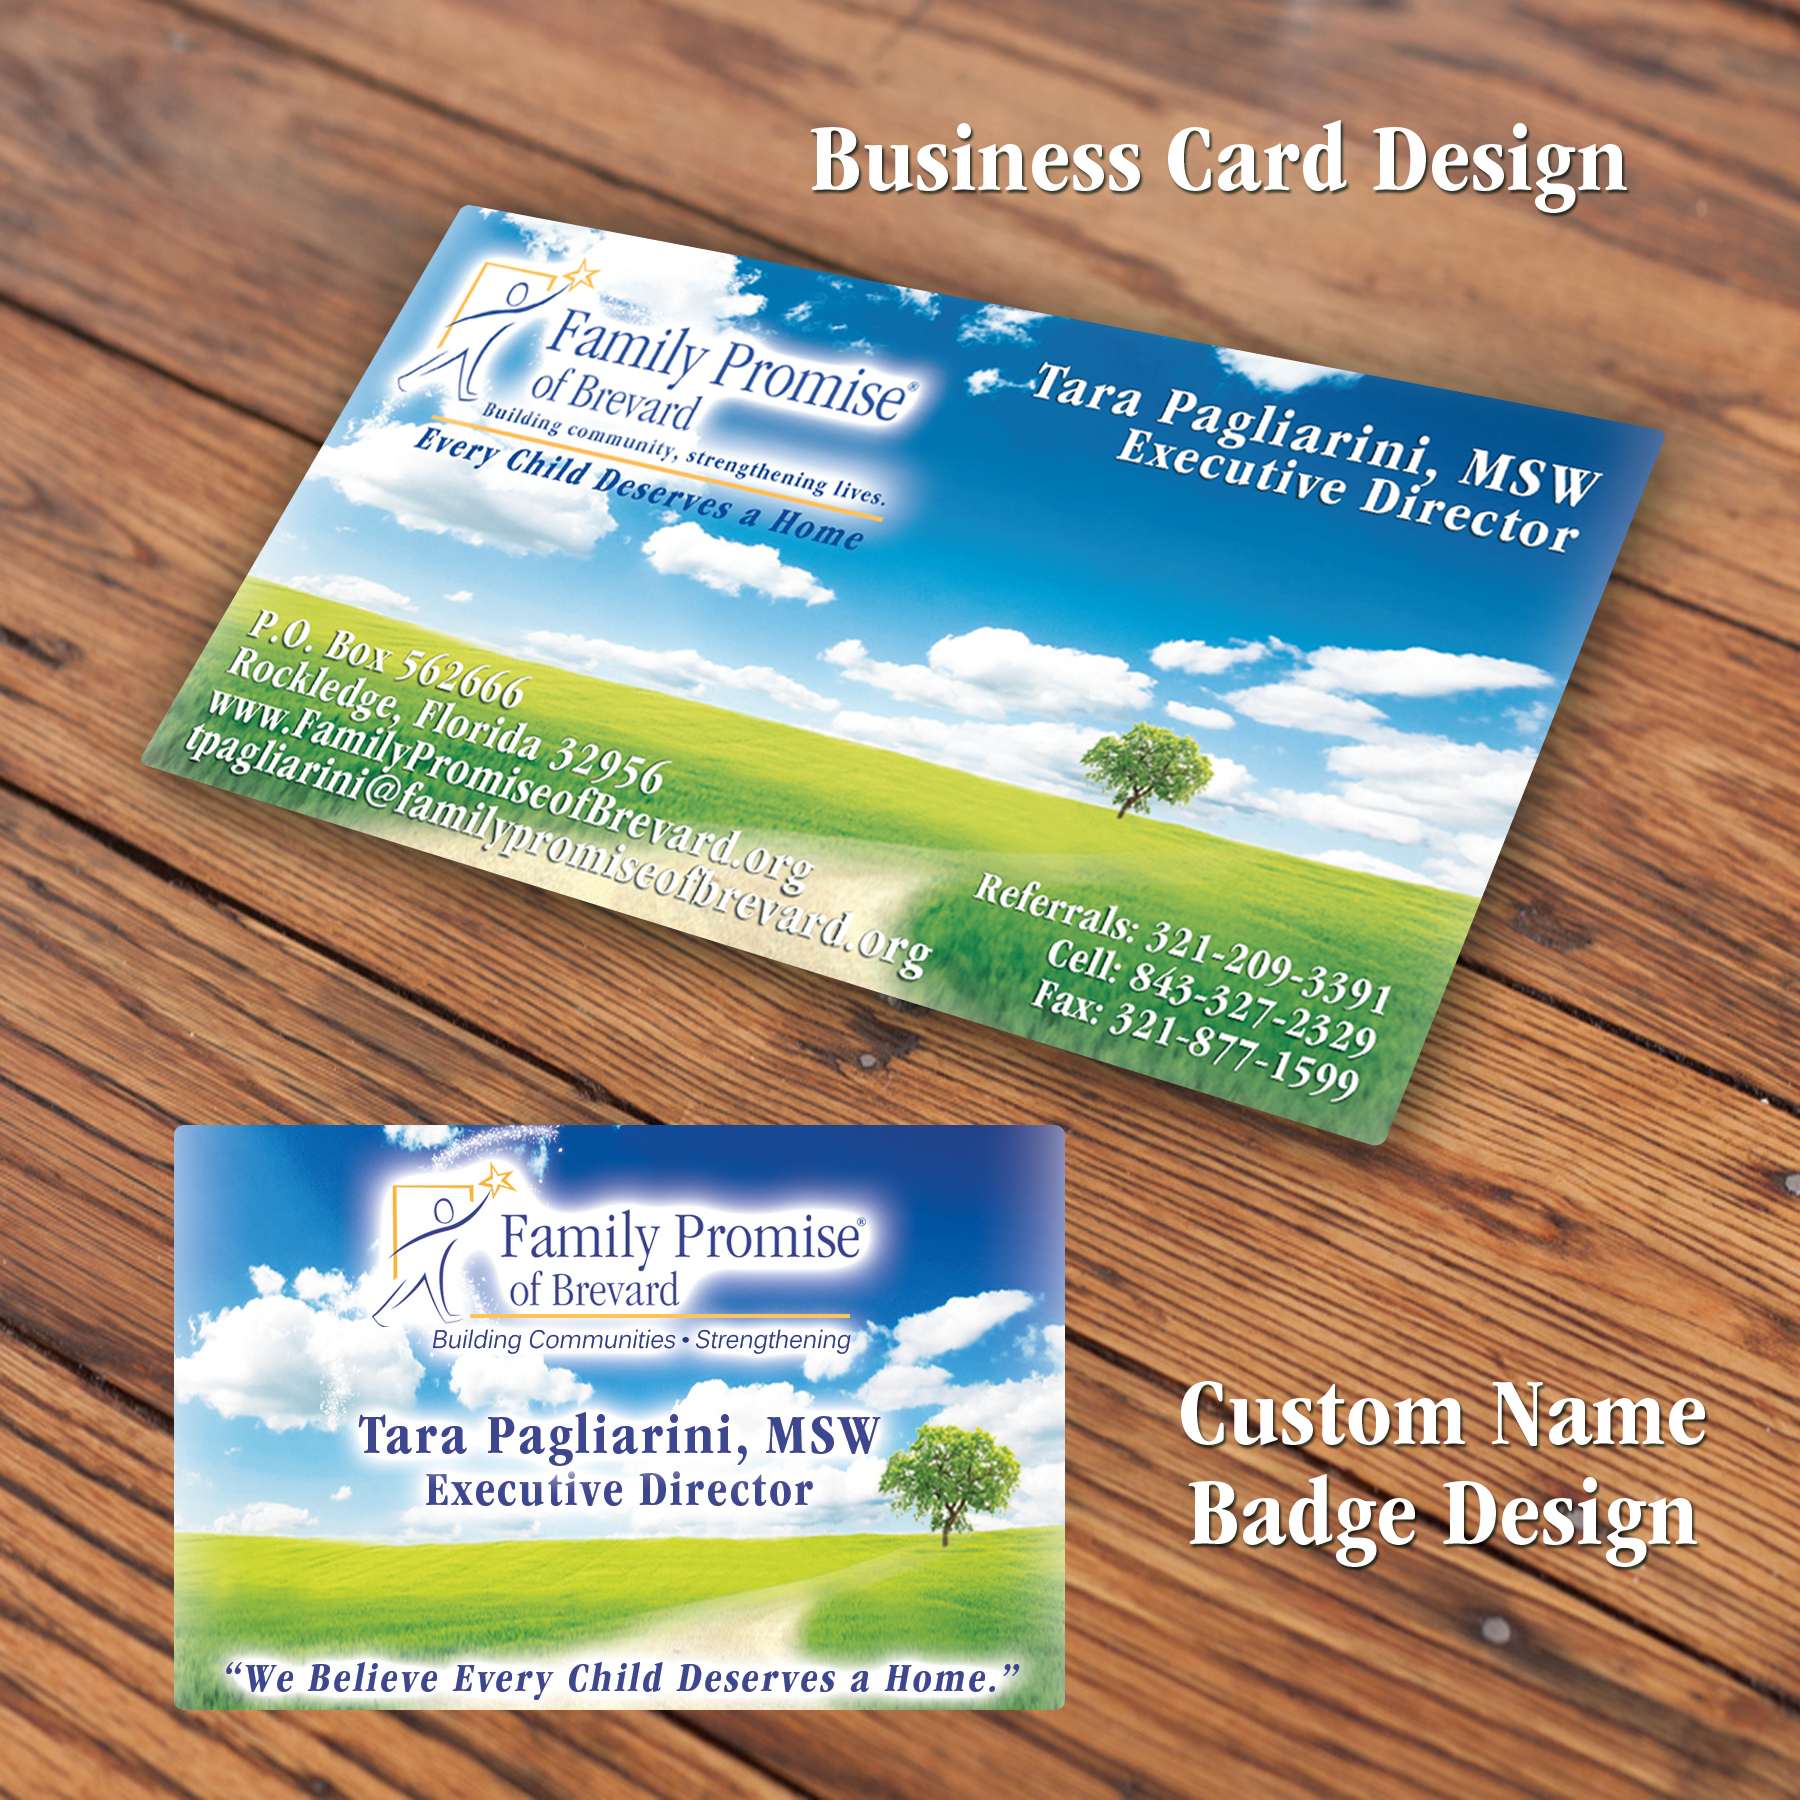 Make Your Business Stand Out From The Pack With Eye Catching Collateral Promotional Items And A Professional Social Media Design